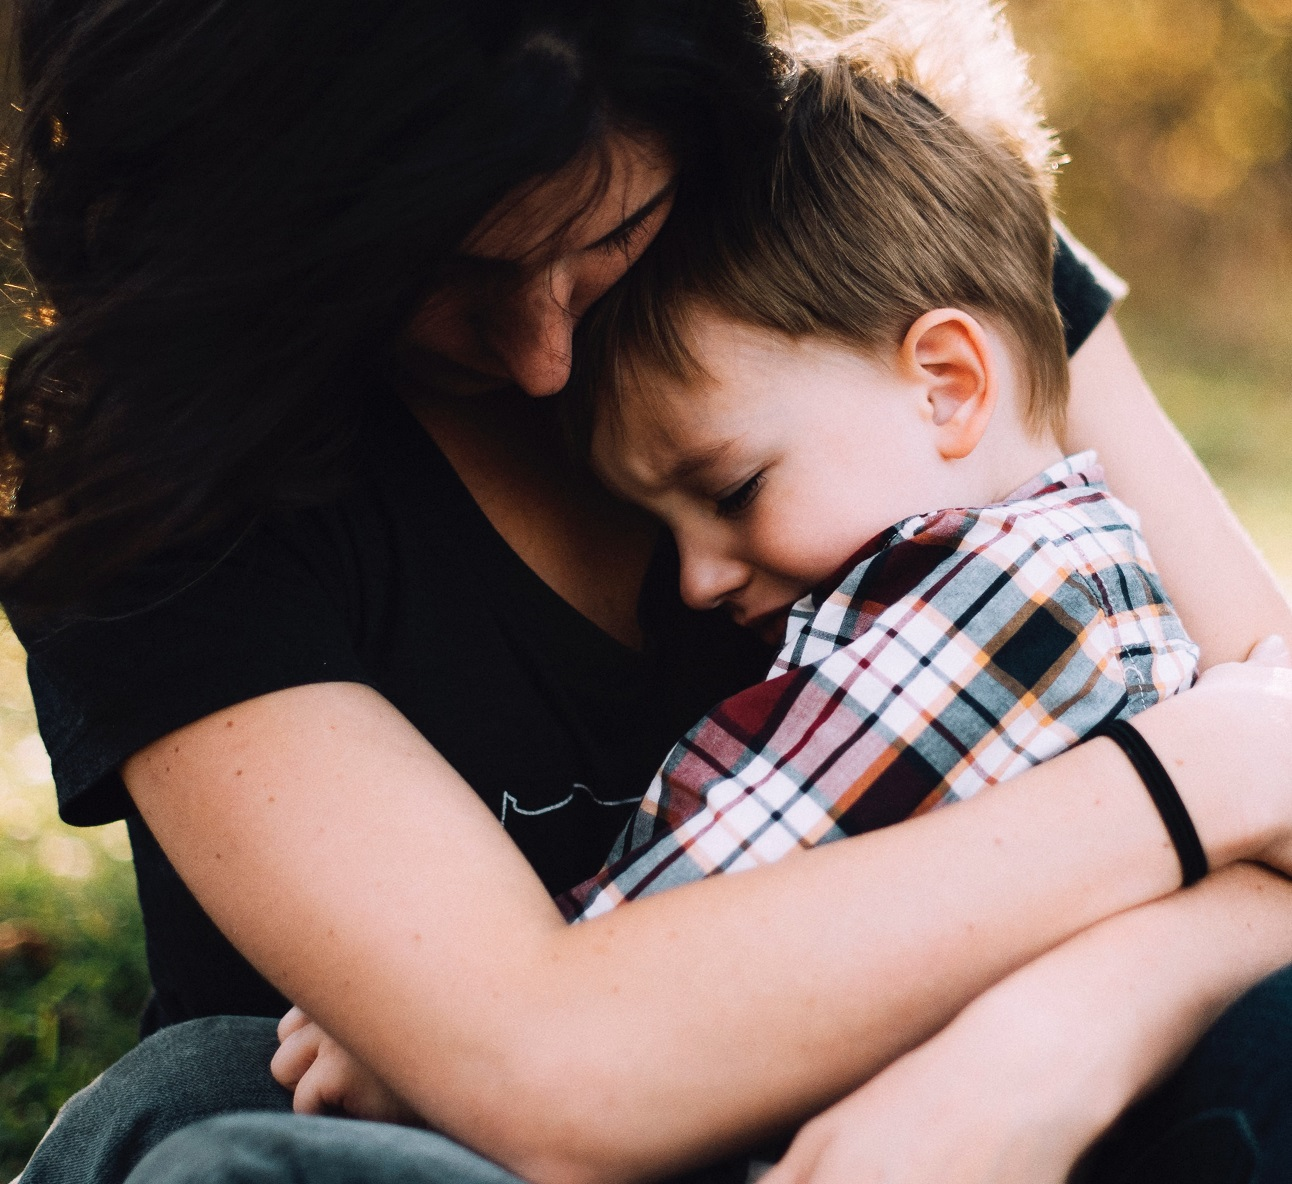 ways to help ease your child's anxiety